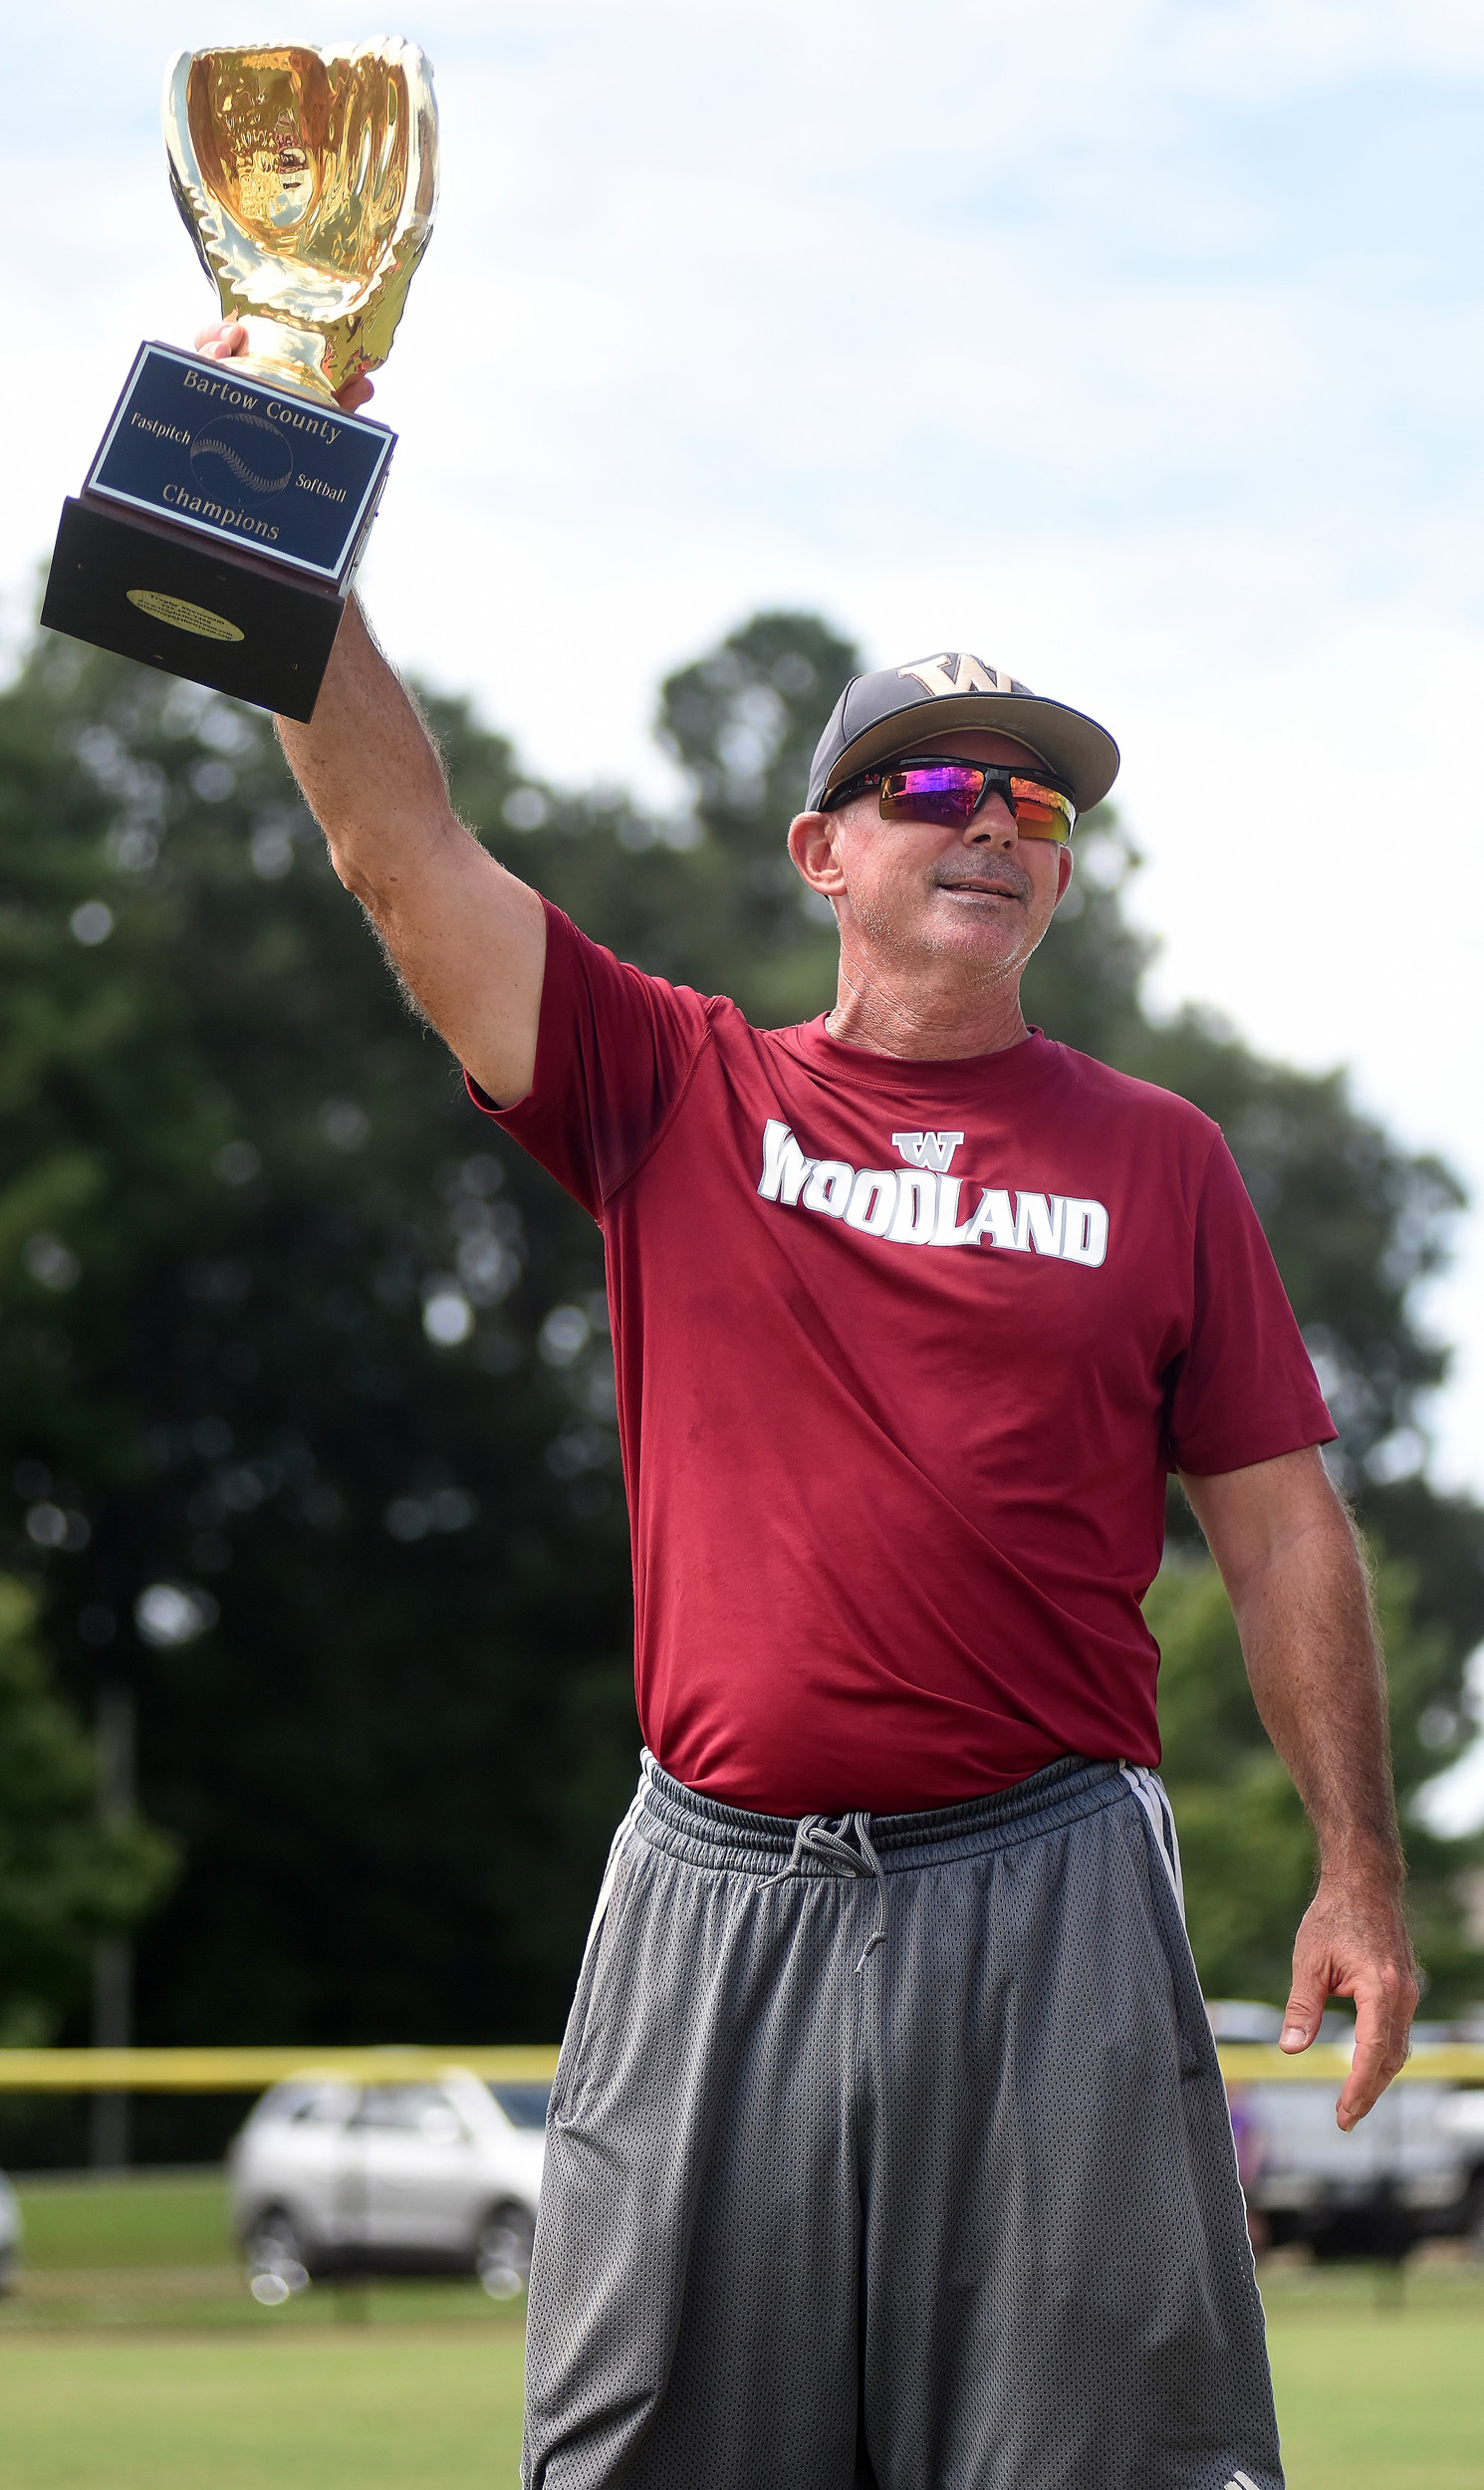 Woodland head coach Colman Roberts hoists the Bartow County Championships trophy Saturday after his team's 11-3 win over Cartersville at Hamilton Crossing.